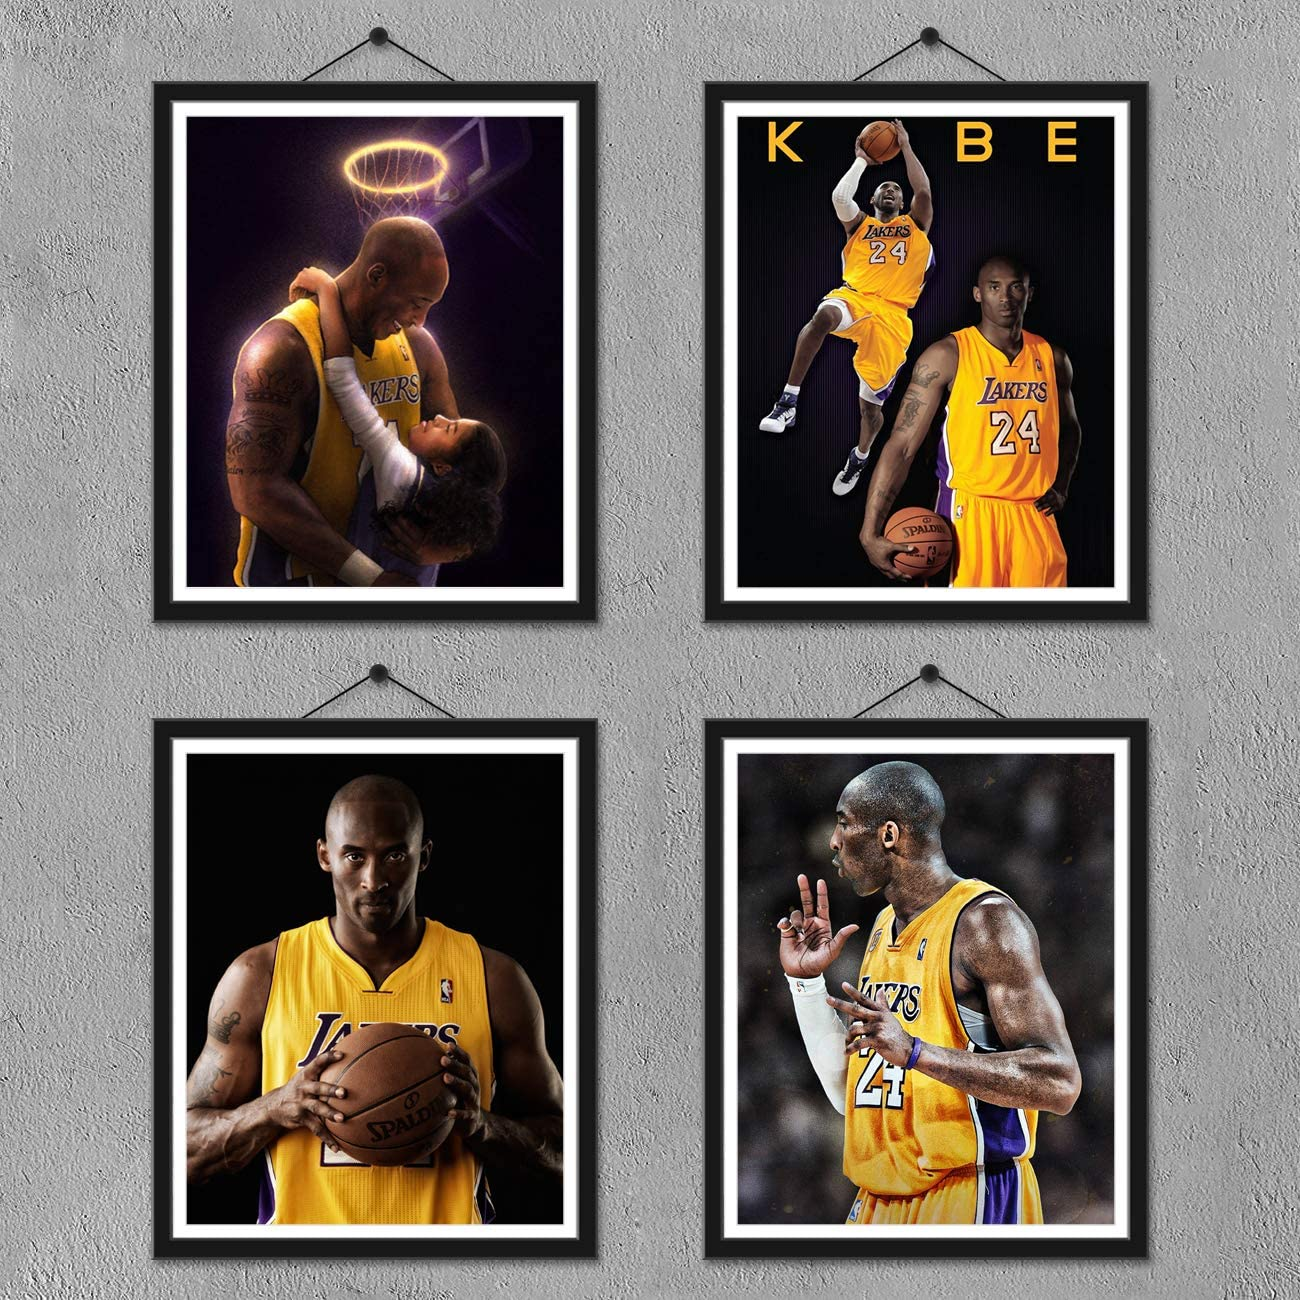 FUNHUA Kobe Bryant and Gigi Posters Canvas Wall Art Bedroom Basketball Player Sports Painting Print (No frame, 8x10 Inch)